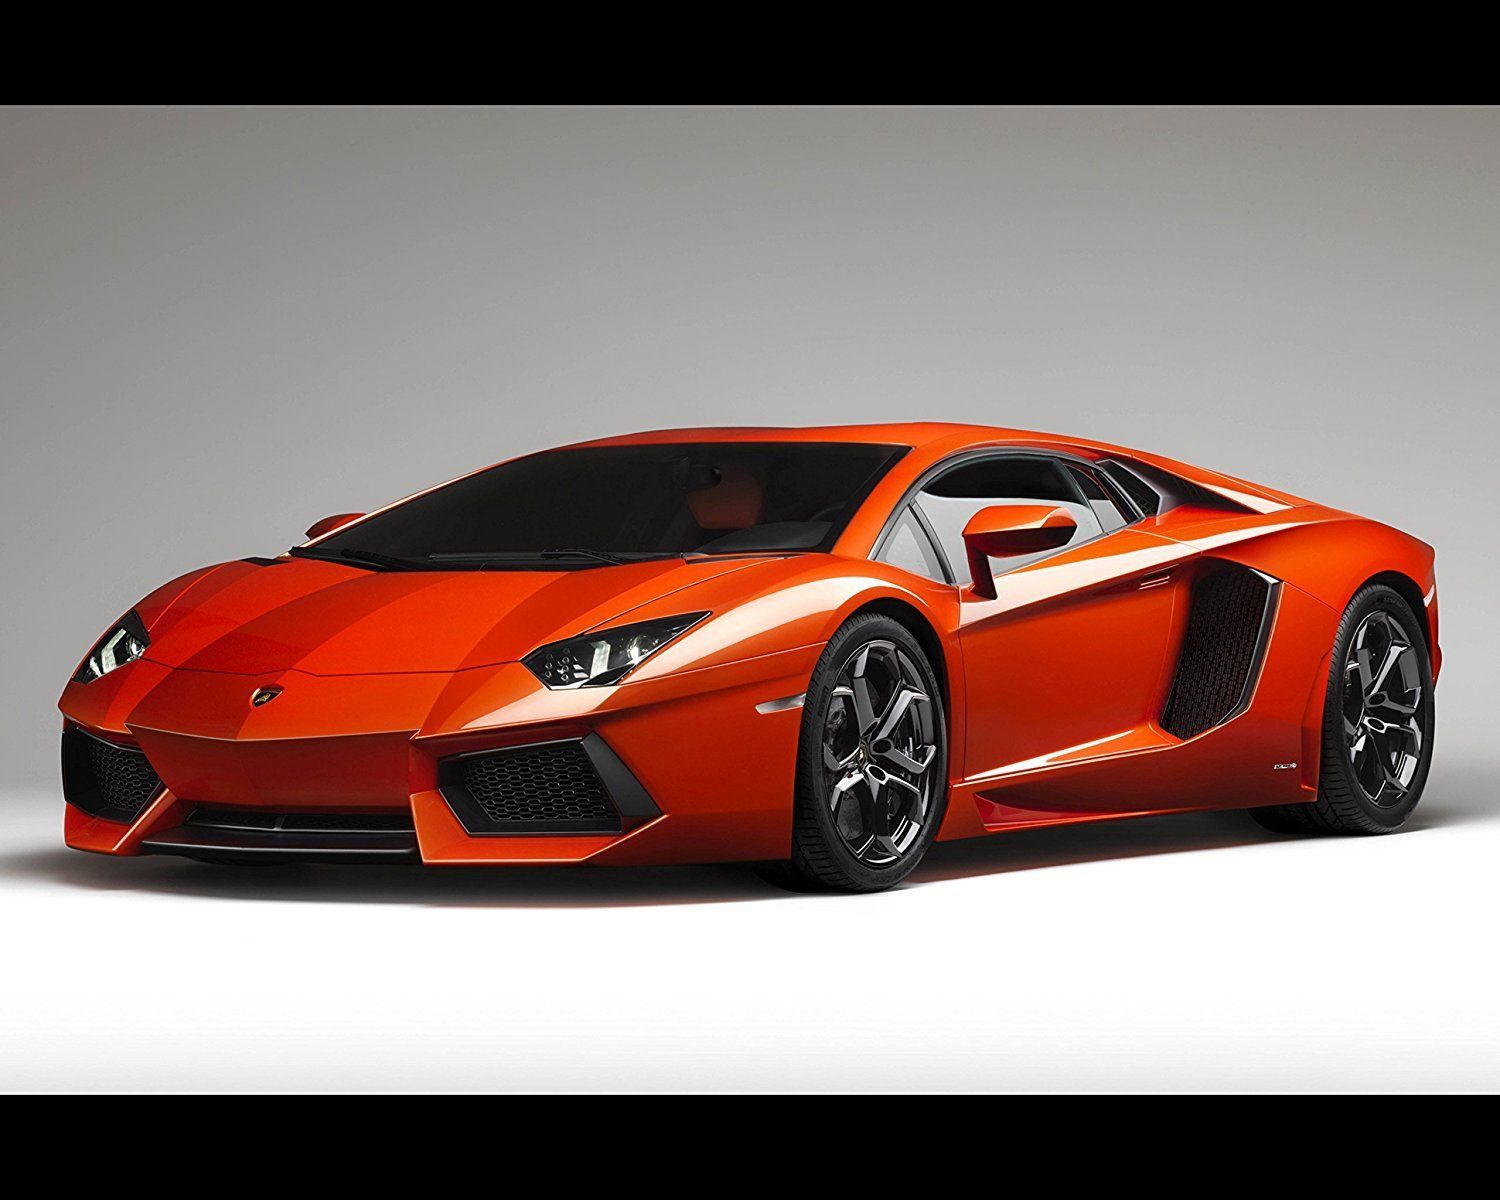 Lamborghini Aventador Car Poster Wall Decoration High Quality 16x20 Lamborghini Aventador Super Cars Super Sport Cars